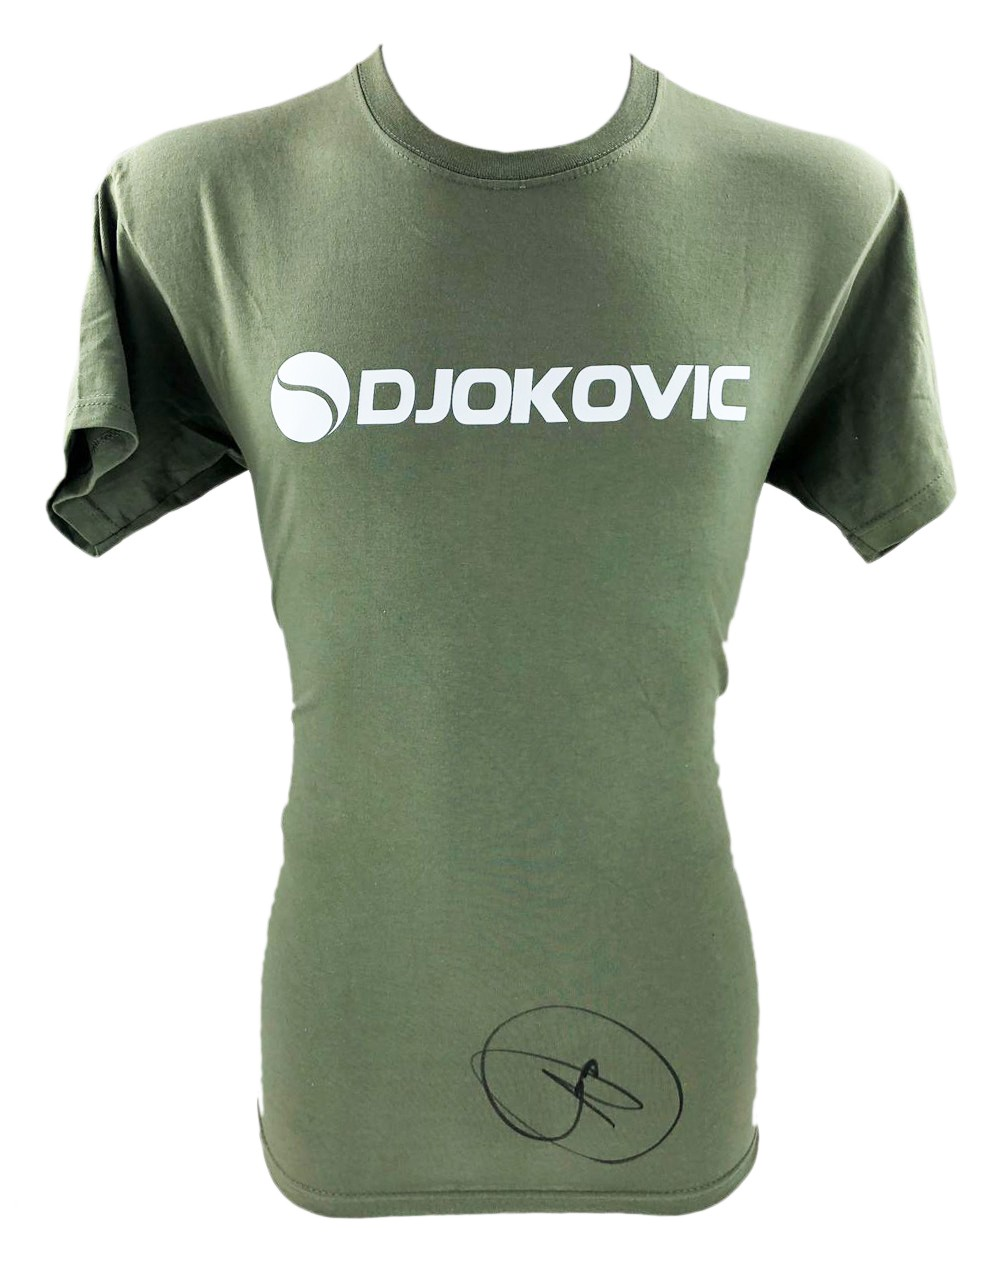 Signed Novak Djokovic Shirt Genuine Tennis Autograph Firma Stella